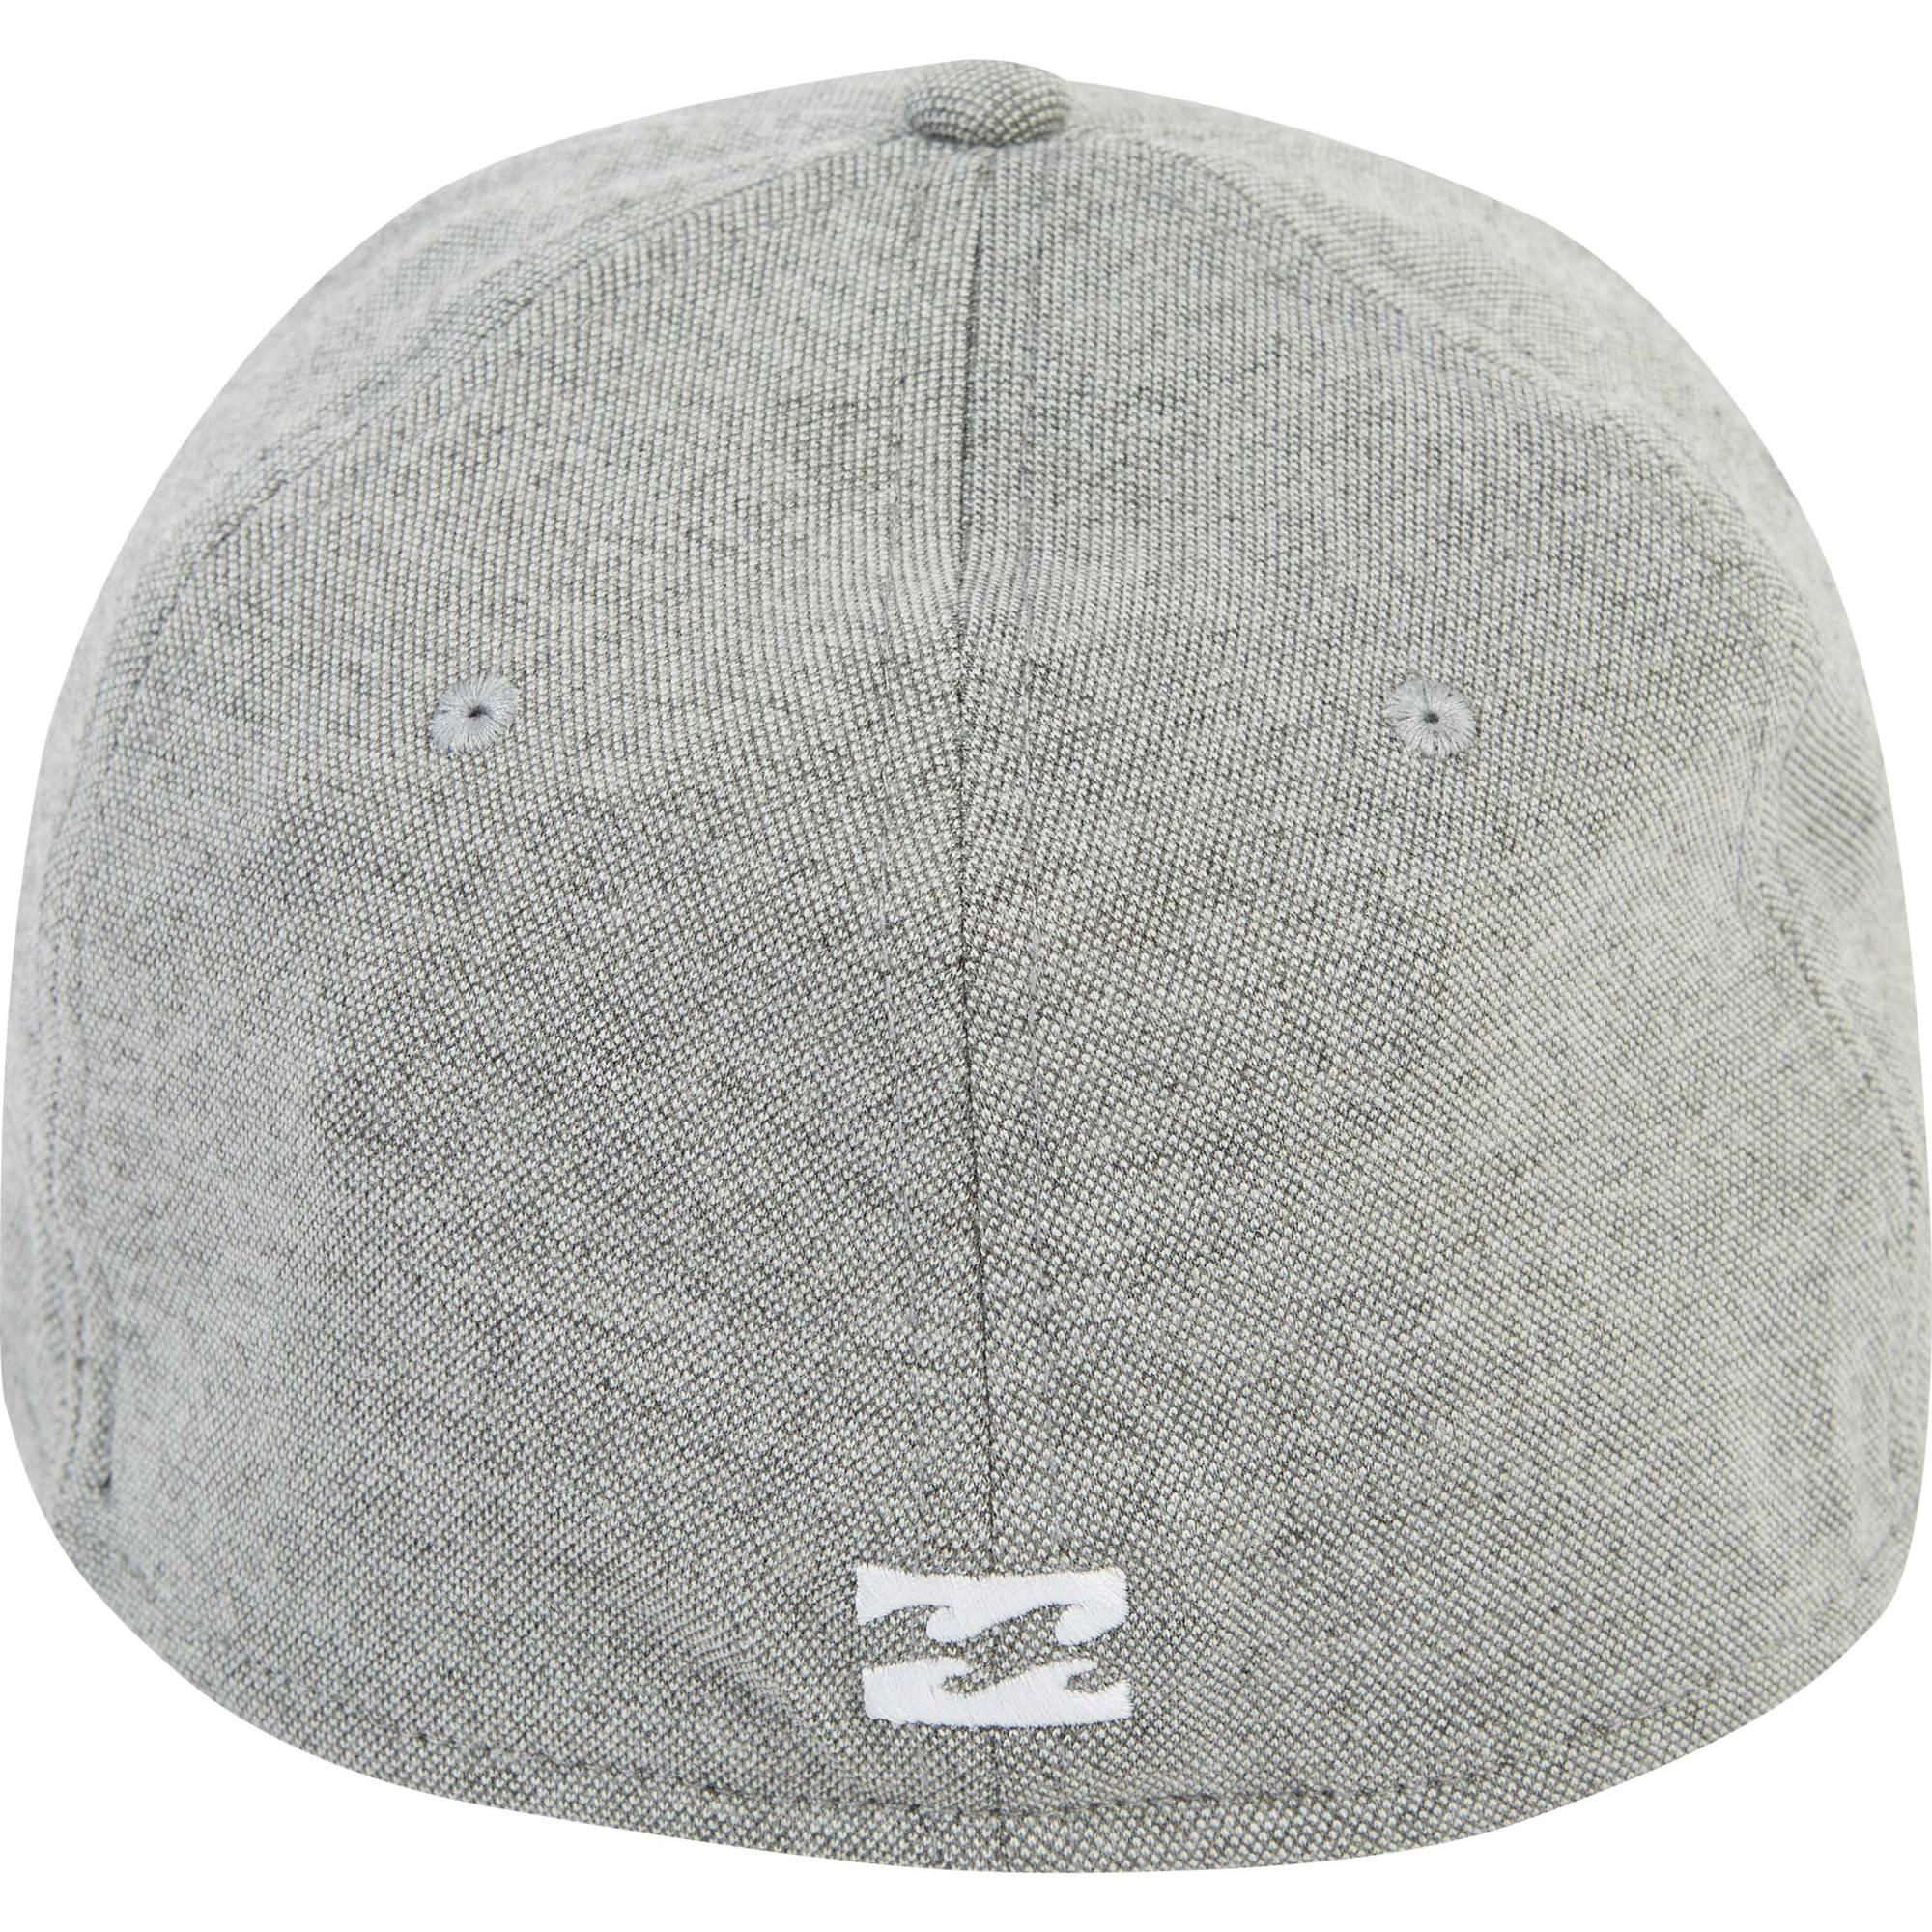 outlet store 1c427 64f38 ... promo code for lyst billabong unity heather stretch fit hat in gray for  men e90c8 a4416